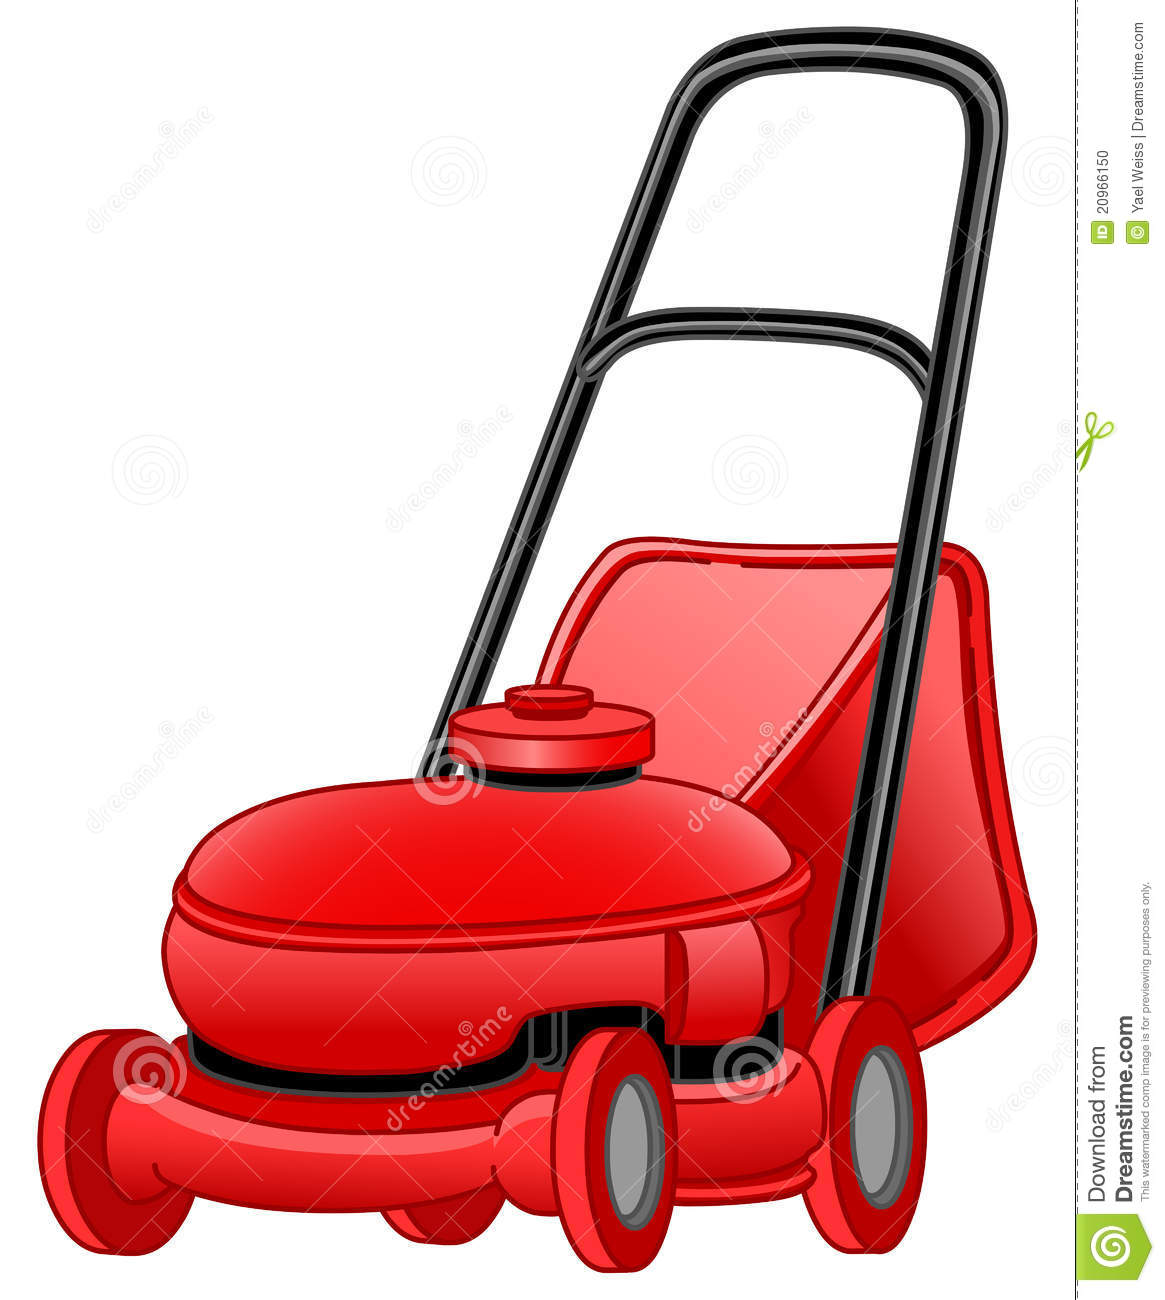 Lawn Mower Stock Photo - Image: 20966150